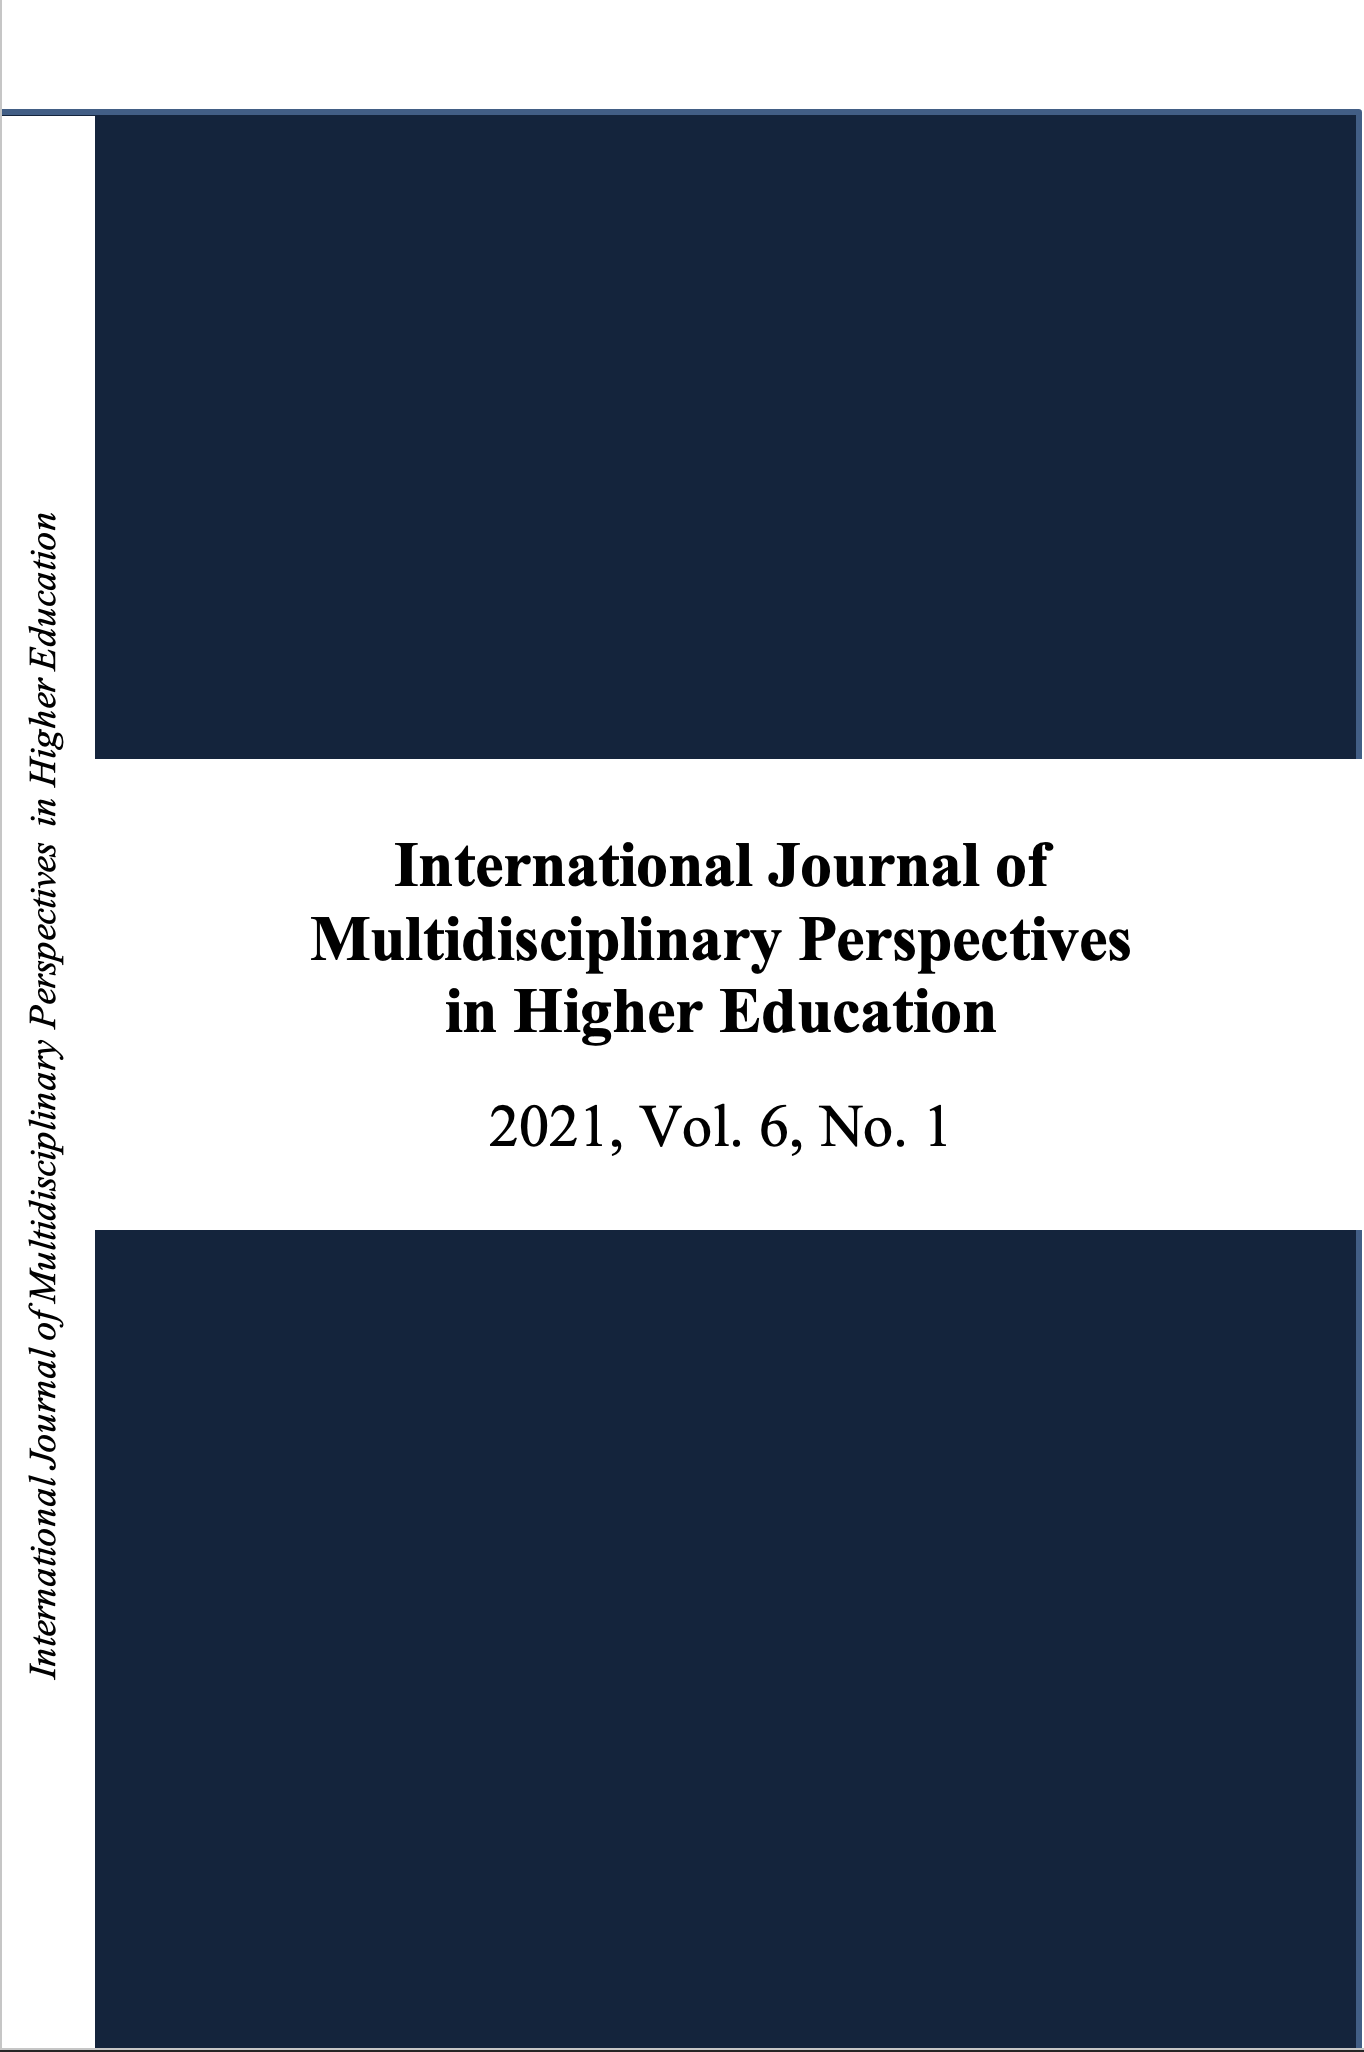 View Vol. 6 No. 1 (2021): International Journal of Multidisciplinary Perspectives in Higher Education